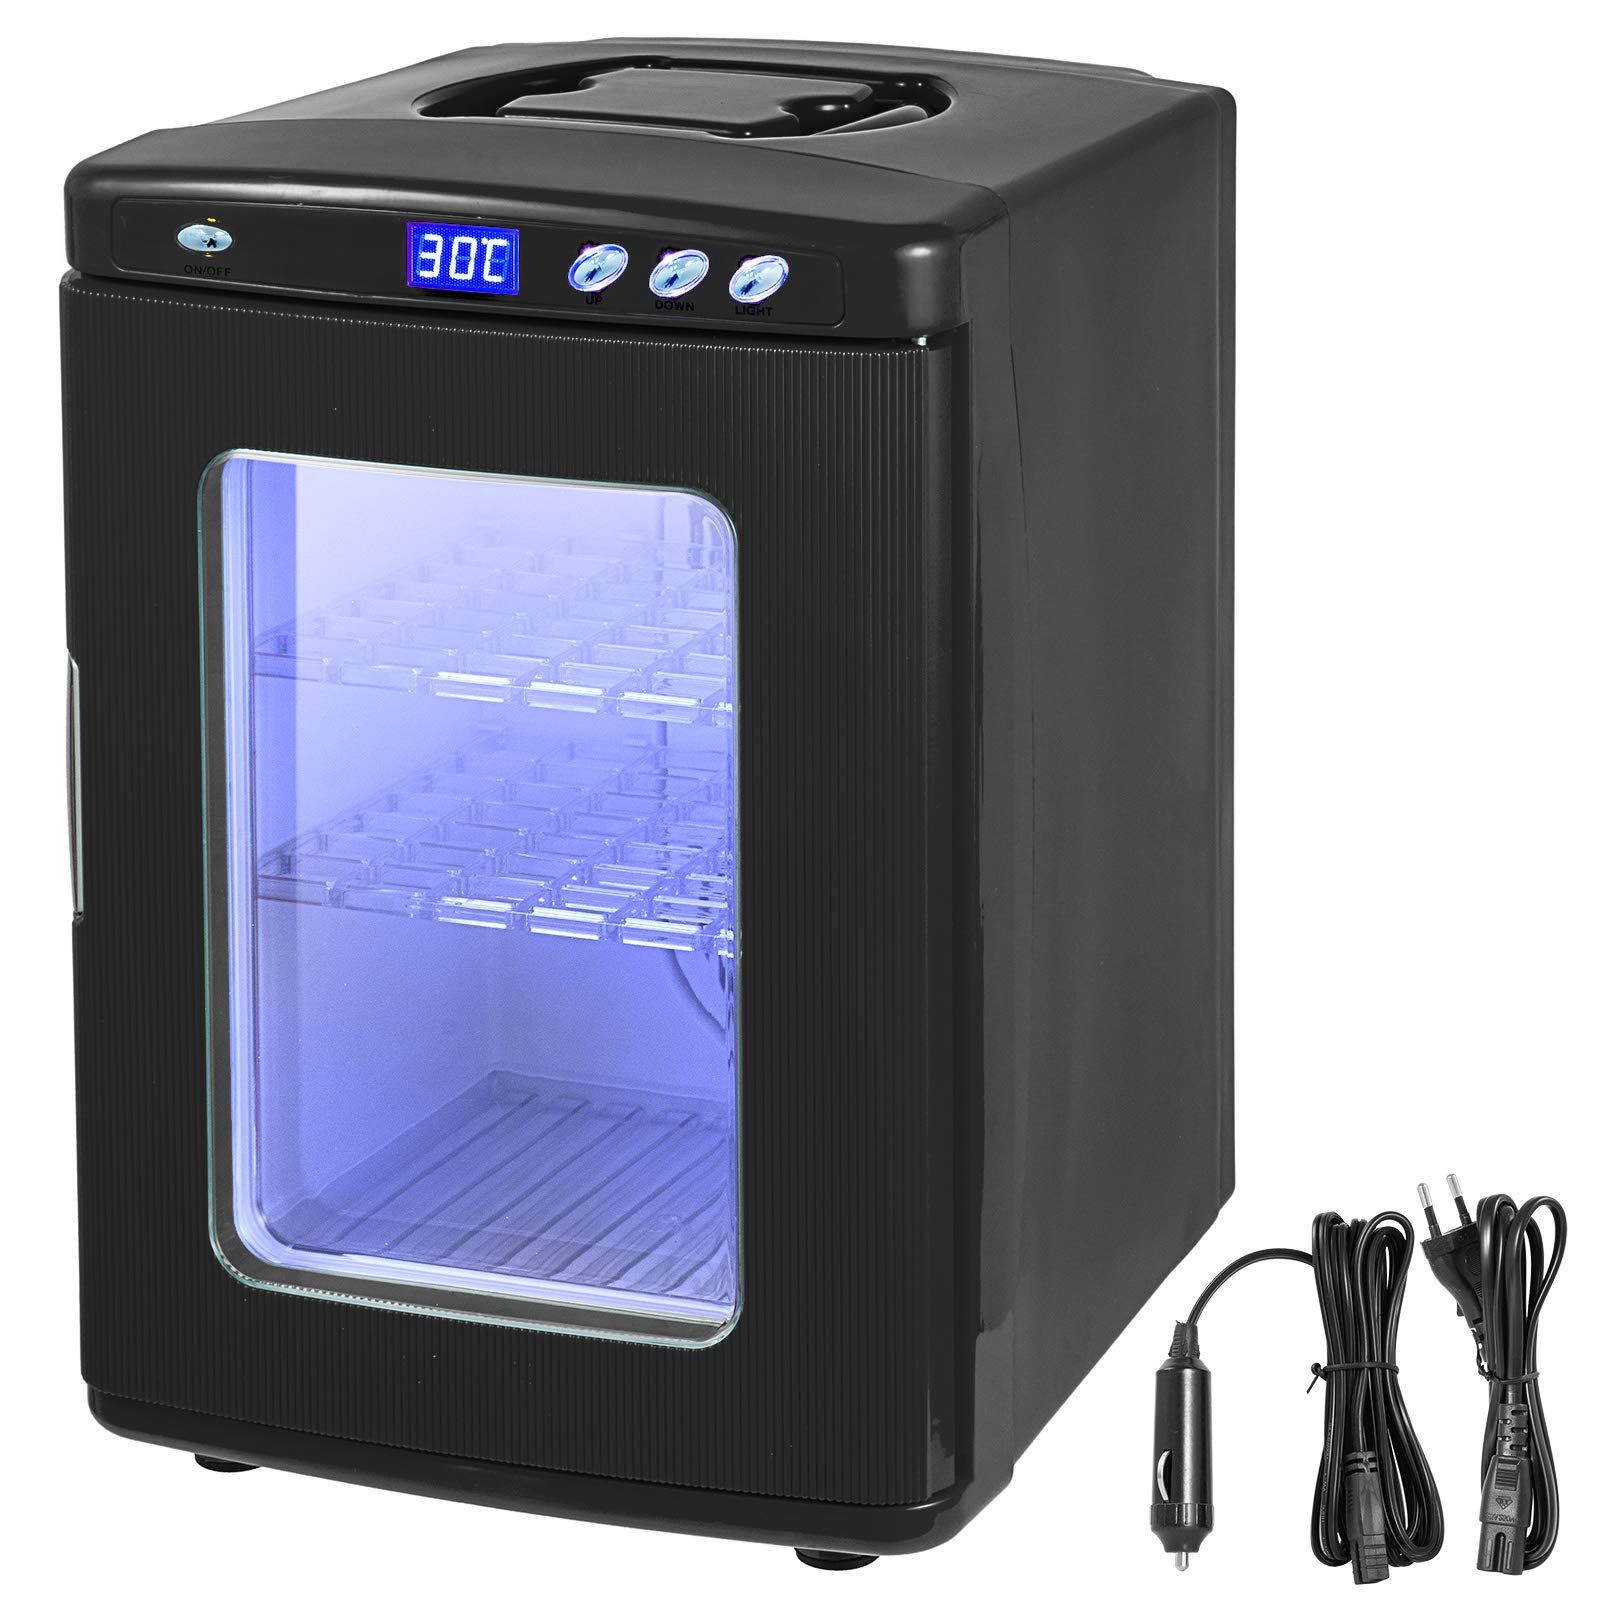 Happybuy 25L Reptile Incubator Scientific Lab Incubator Cooling and Heating 2-60°C 12V/110V Work for Small Reptiles